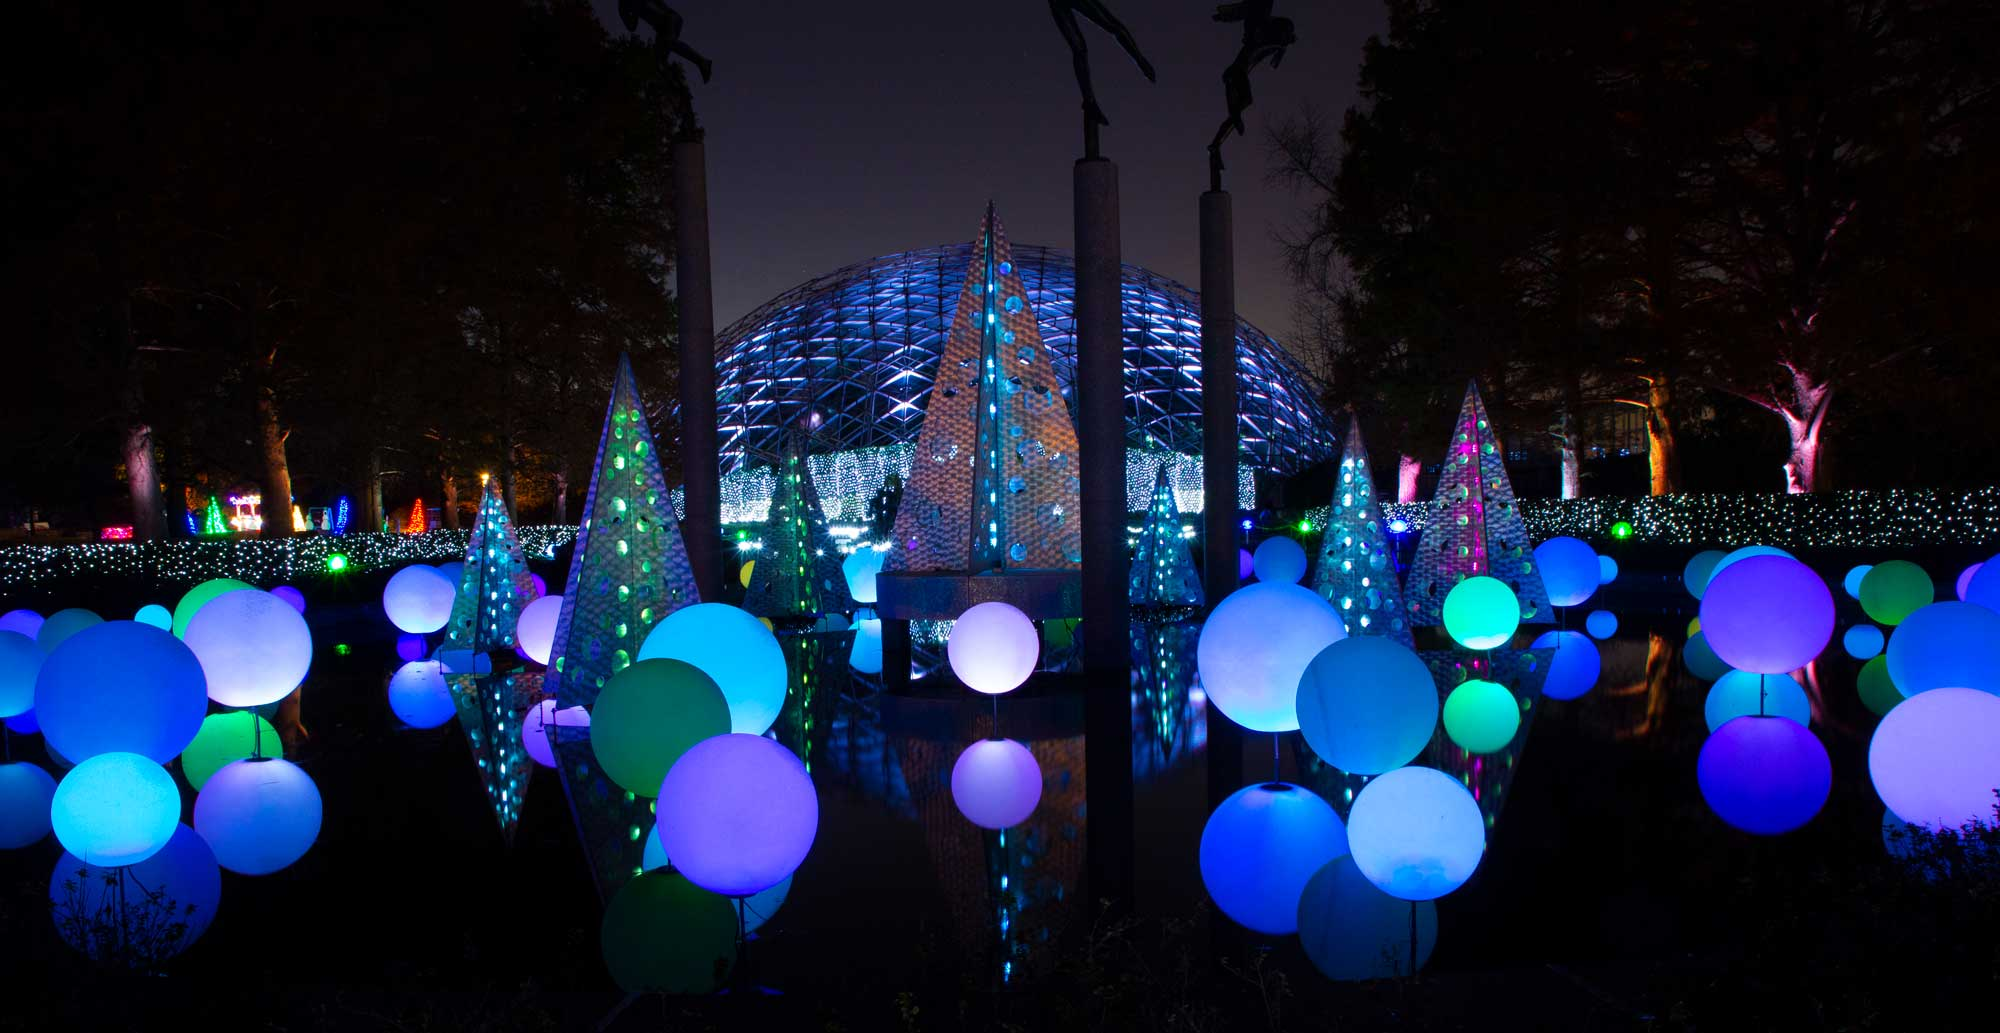 Things To Do On Christmas Eve 2020 Botanical Gardens St.Louis Garden Glow at Missouri Botanical Garden